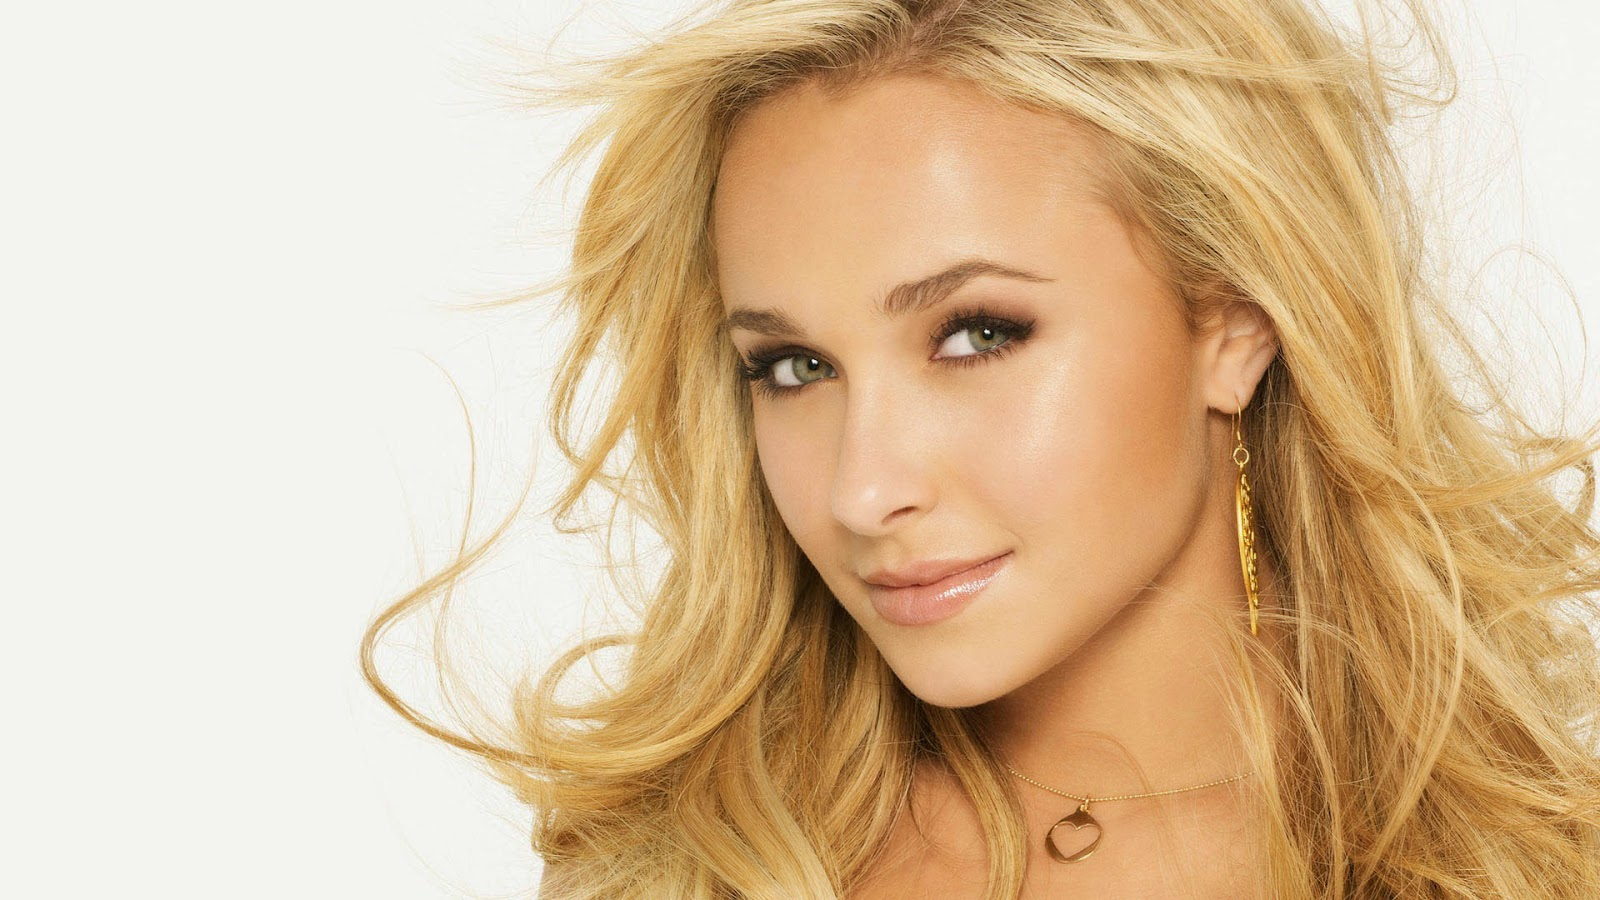 Hayden panettiere top 10 hollywood actress wallpapers